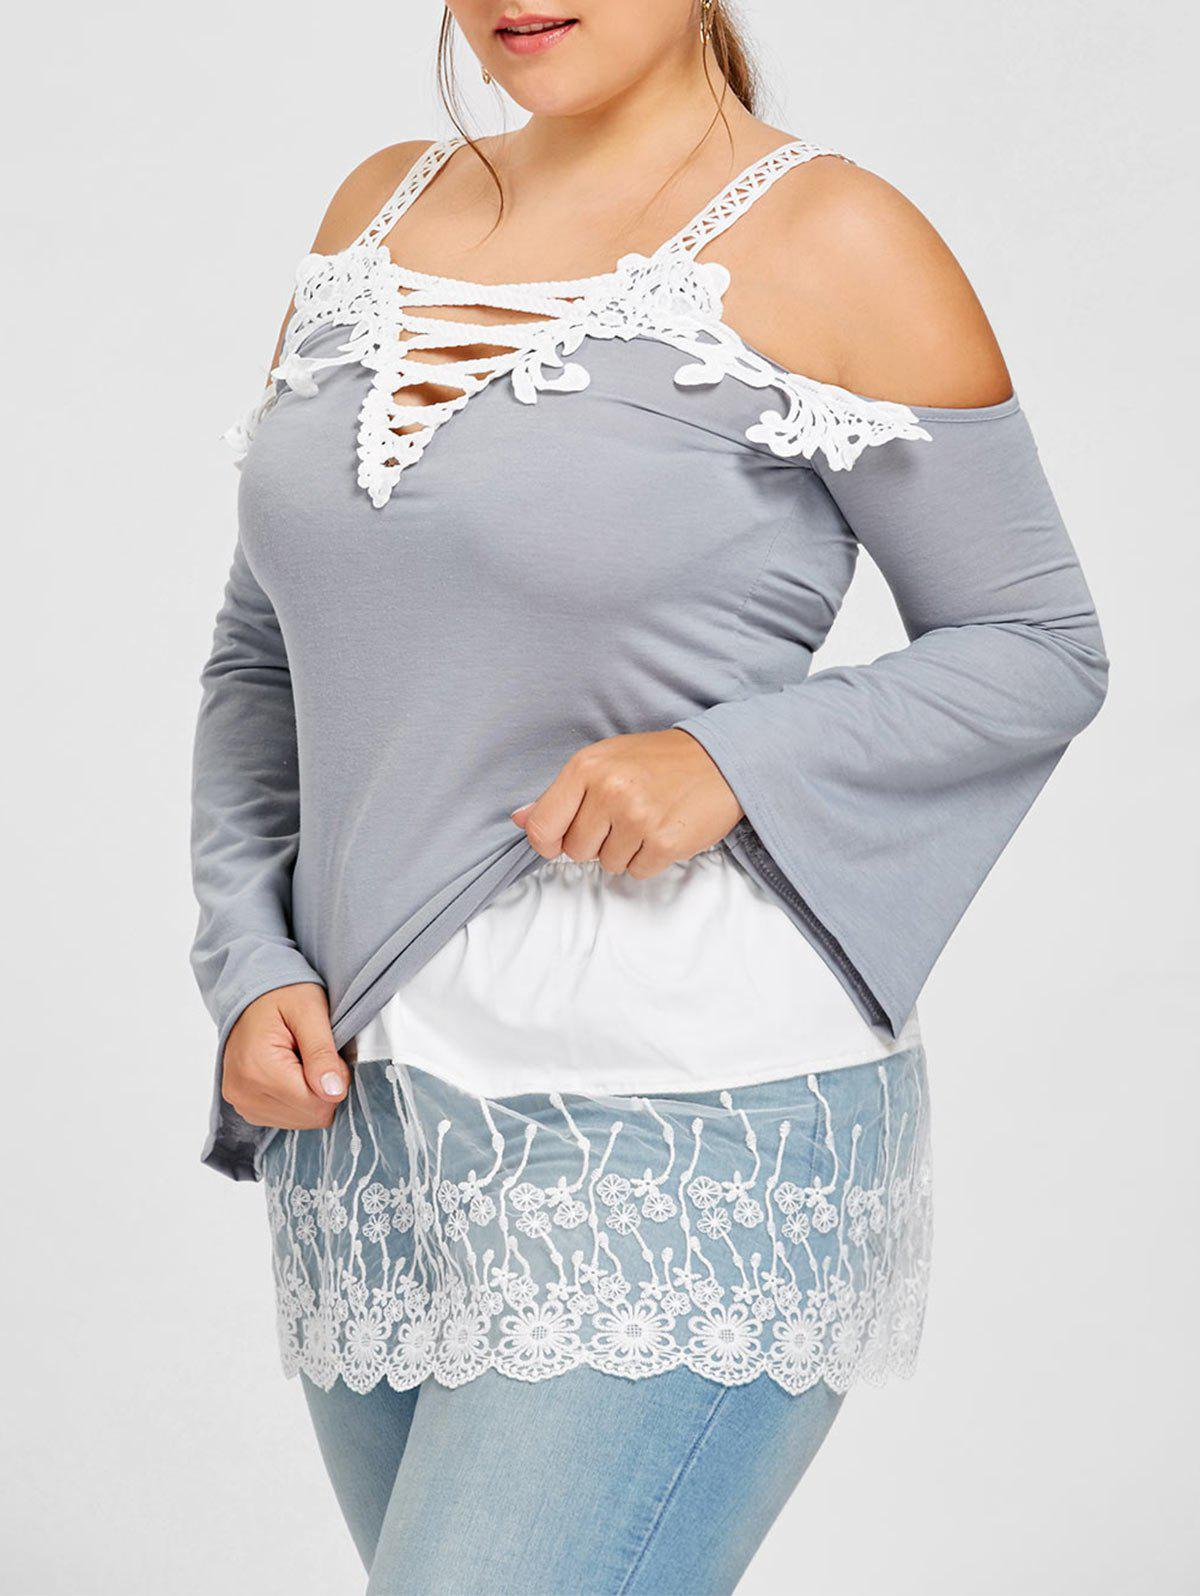 Semi Sheer Floral Lace Extender Plus Size SkirtWOMEN<br><br>Size: 4XL; Color: WHITE; Material: Polyester; Length: Mini; Silhouette: Bodycon; Pattern Type: Solid; Embellishment: Embroidery,Lace; Season: Fall,Winter; Weight: 0.1700kg; Package Contents: 1 x Skirt;